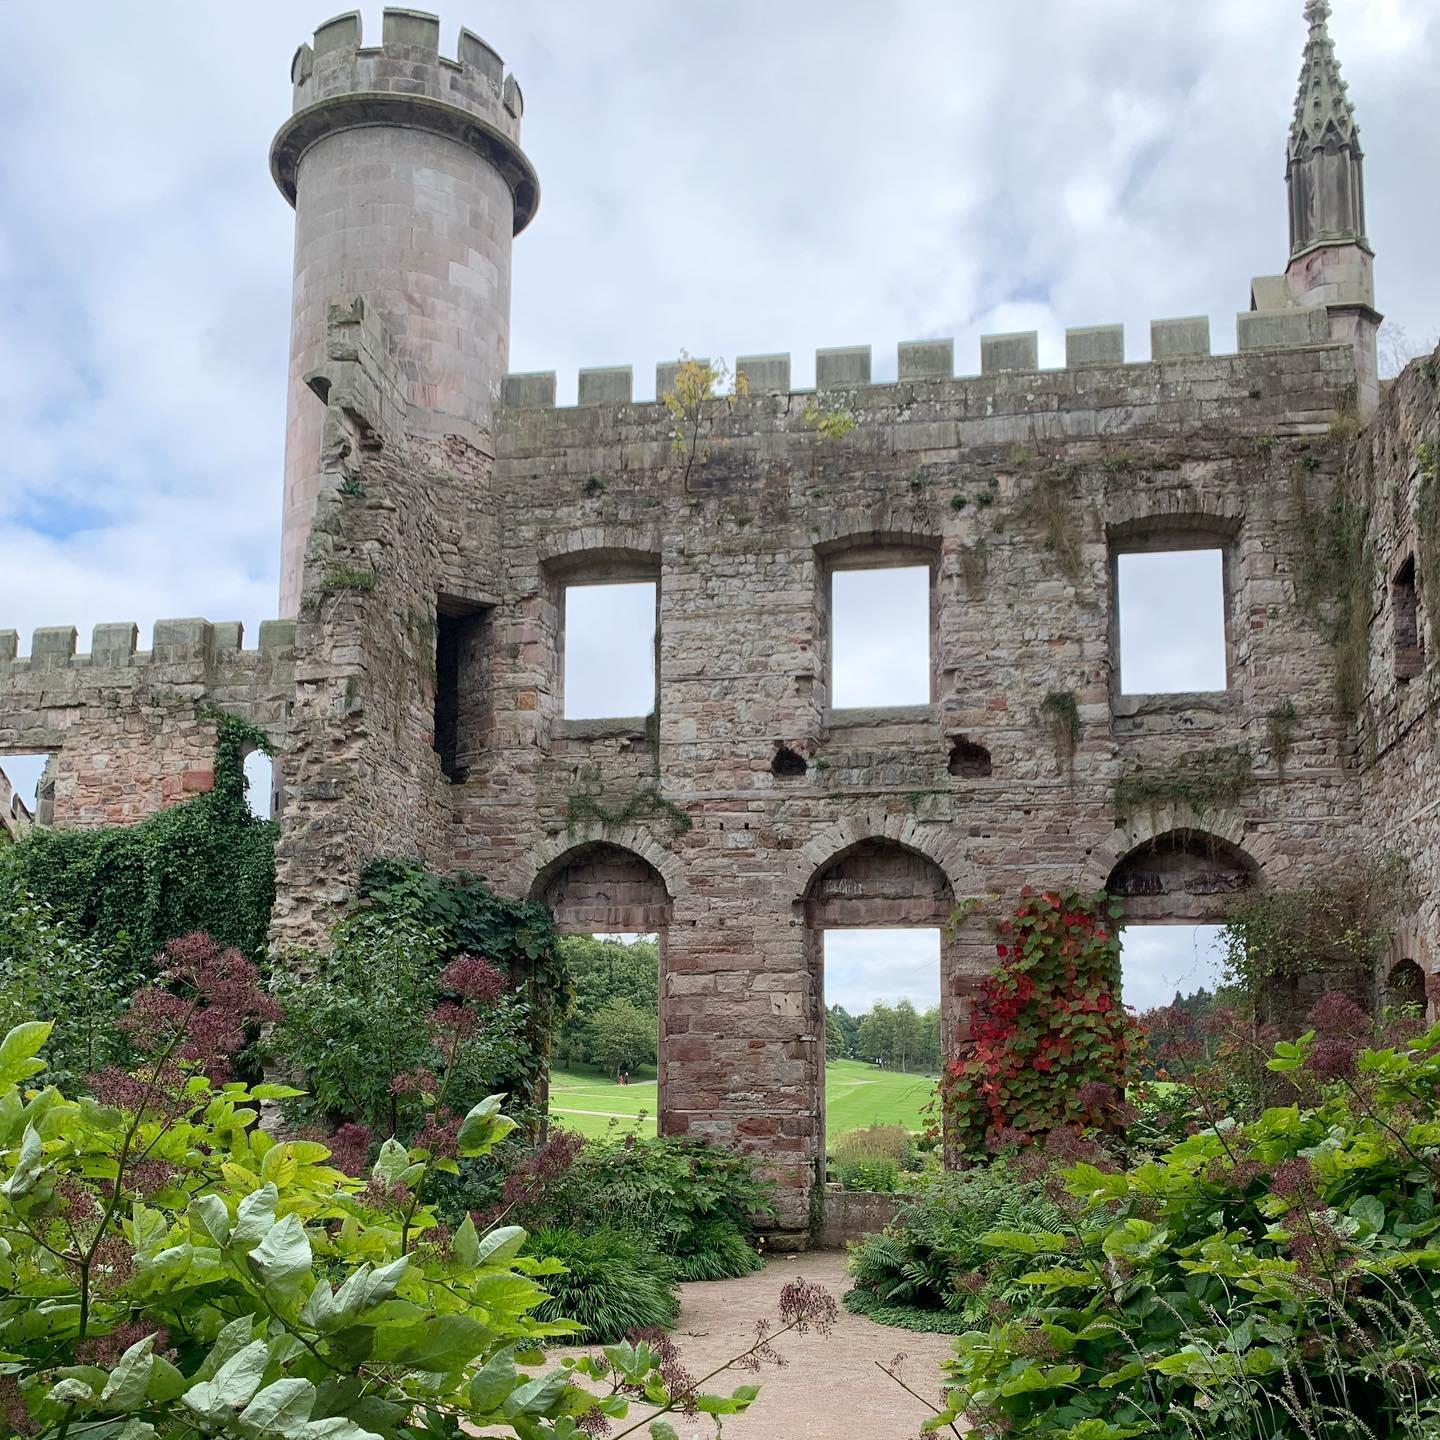 On our last day in the a visit to @lowthercastle The new gardens by @coyotewillow enhance and bring this old ruin to life creating so much atmosphere